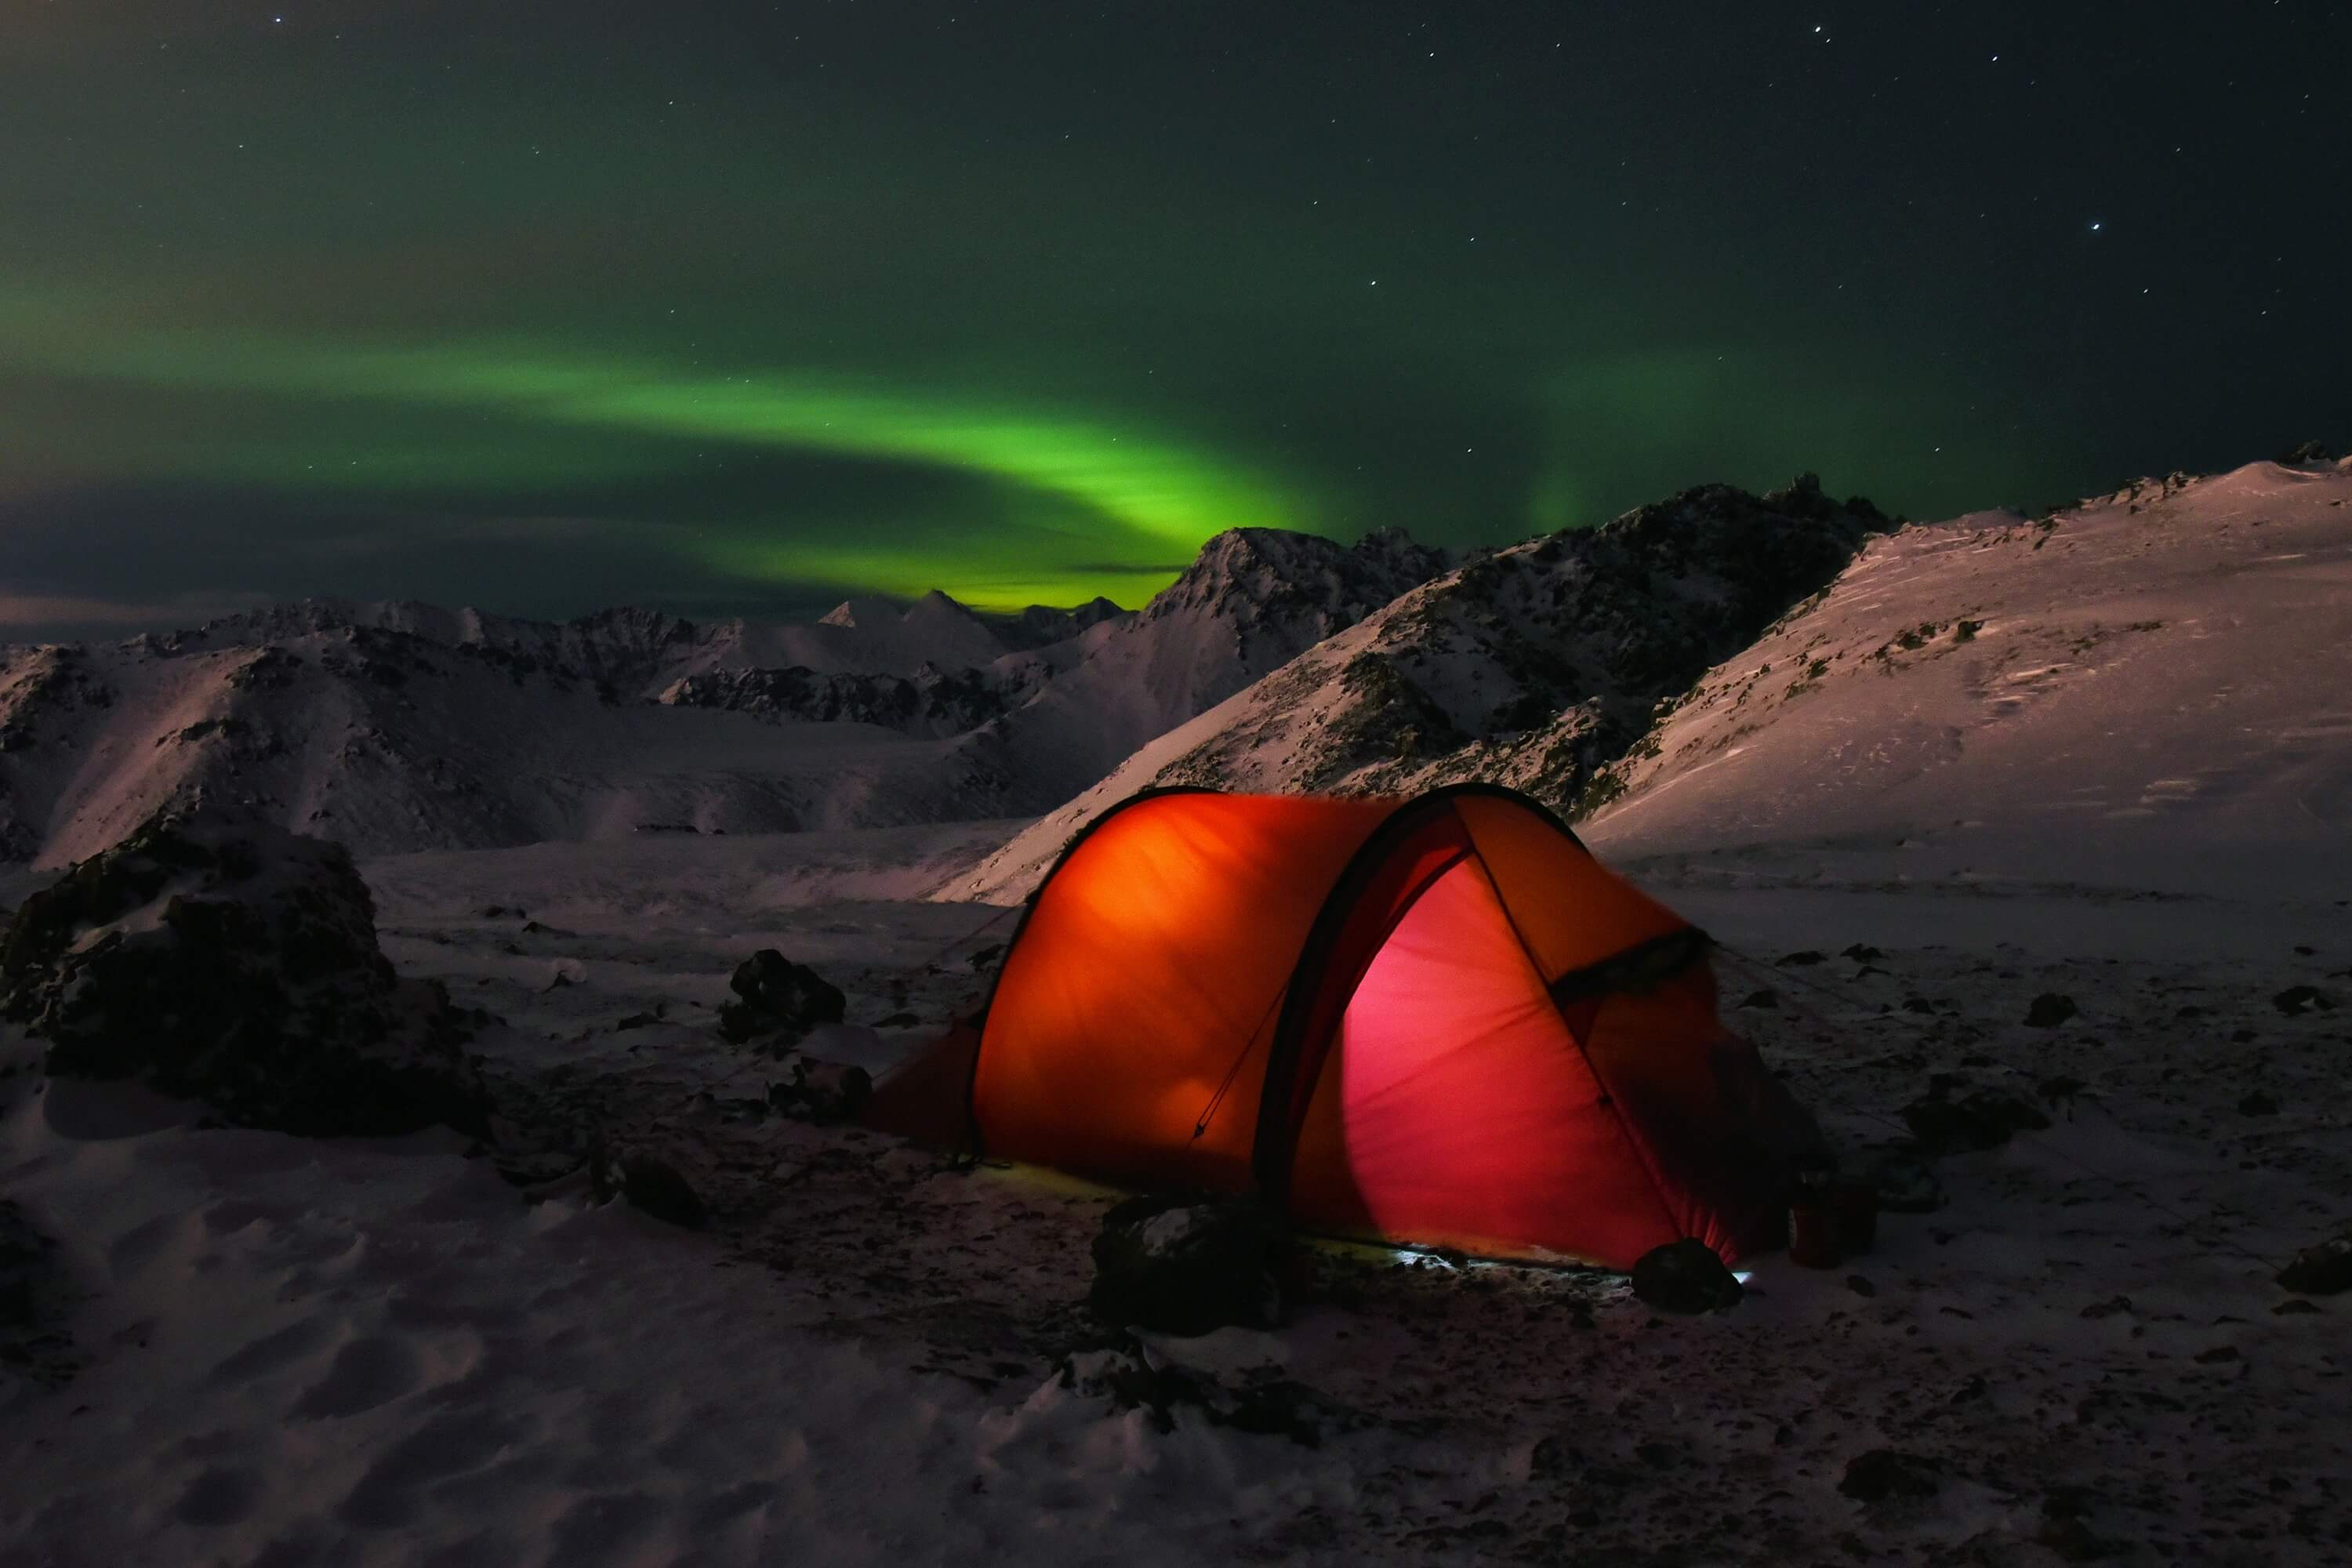 Overnight in a tent in winter can provide many unforgettable feelings